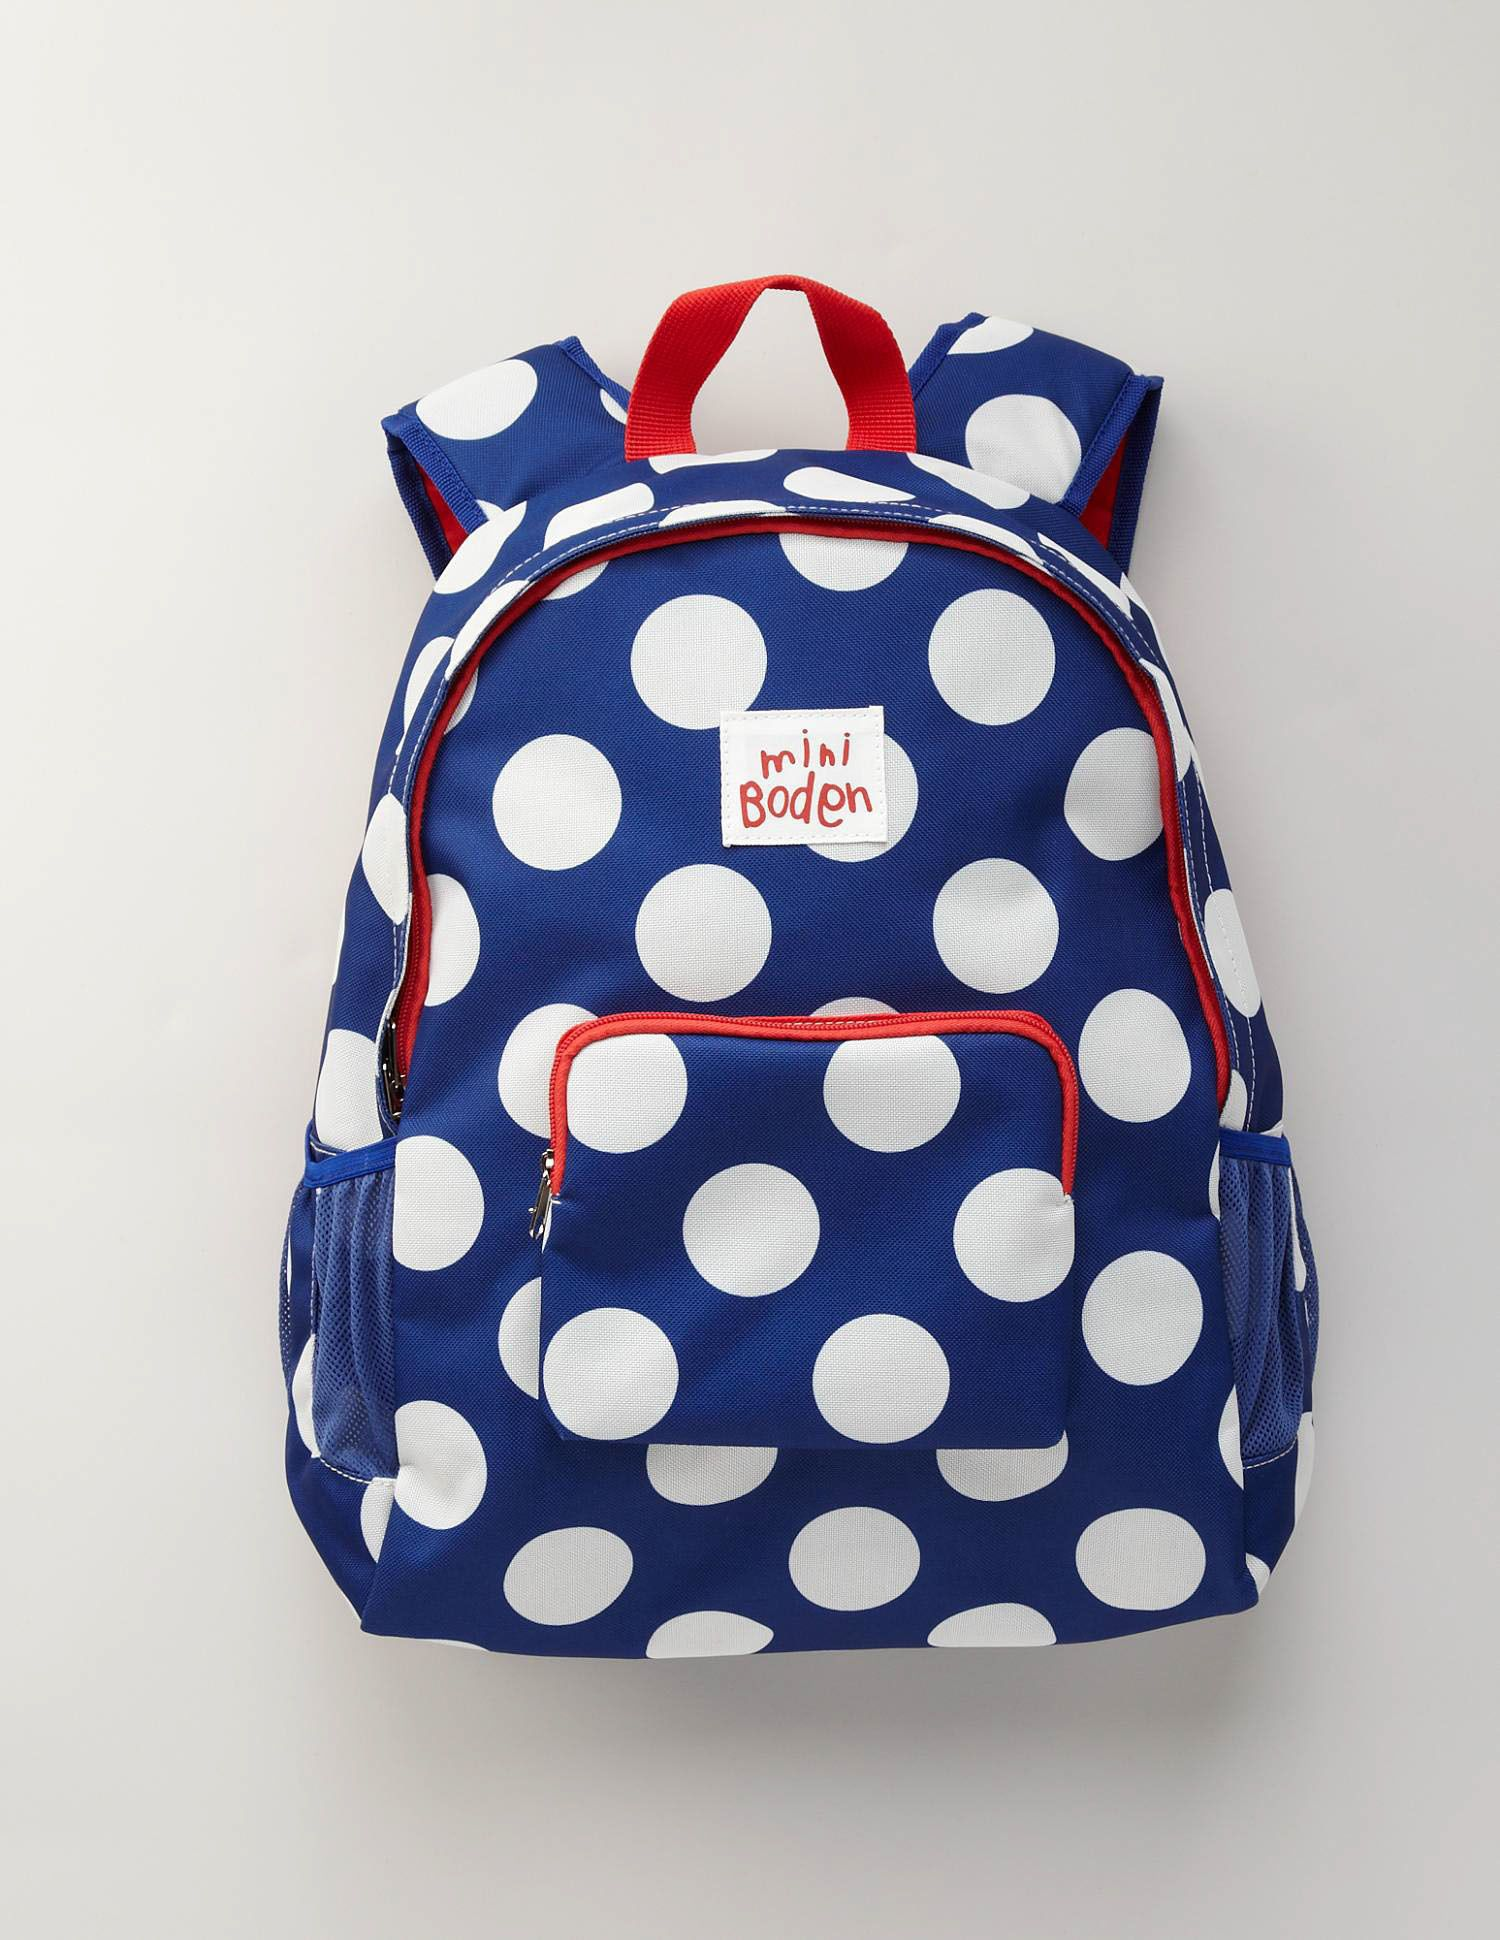 Girls Rucksack - Love this for a backpack - no characters allowed in our  house ) 1b38303f1a